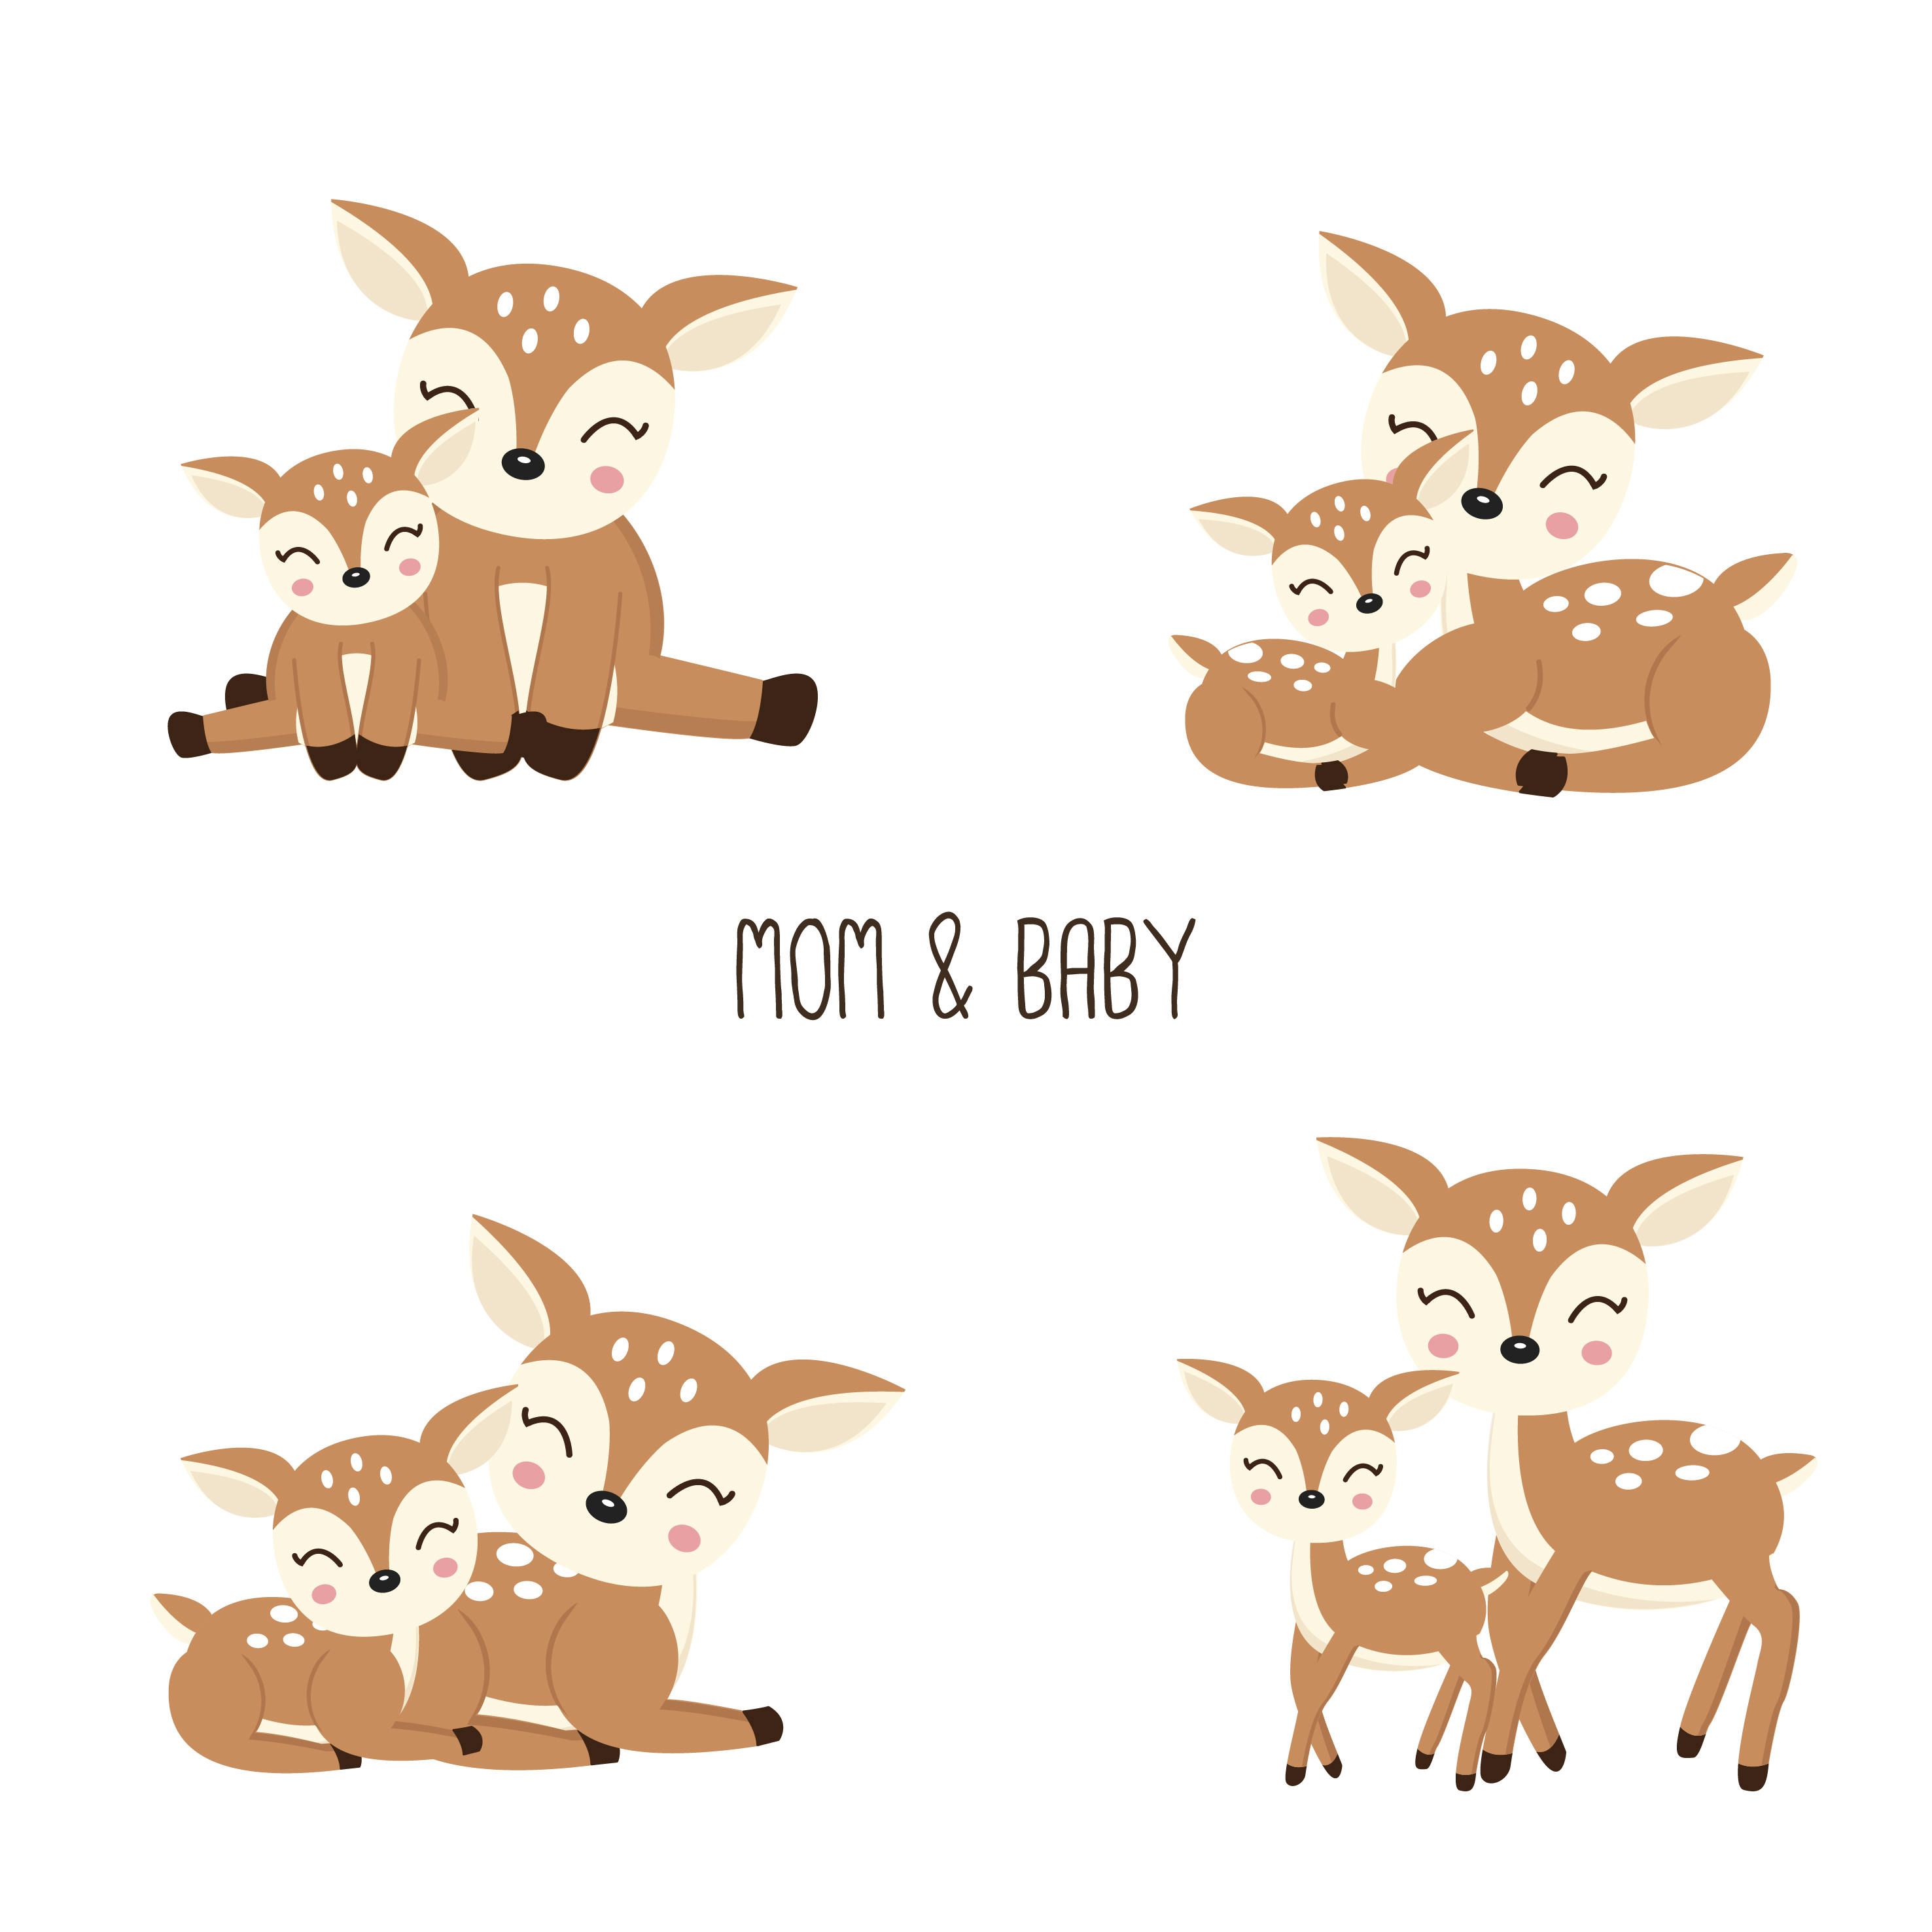 Cute Cartoon Deer Family Mother And Baby Download Free Vectors Clipart Graphics Vector Art